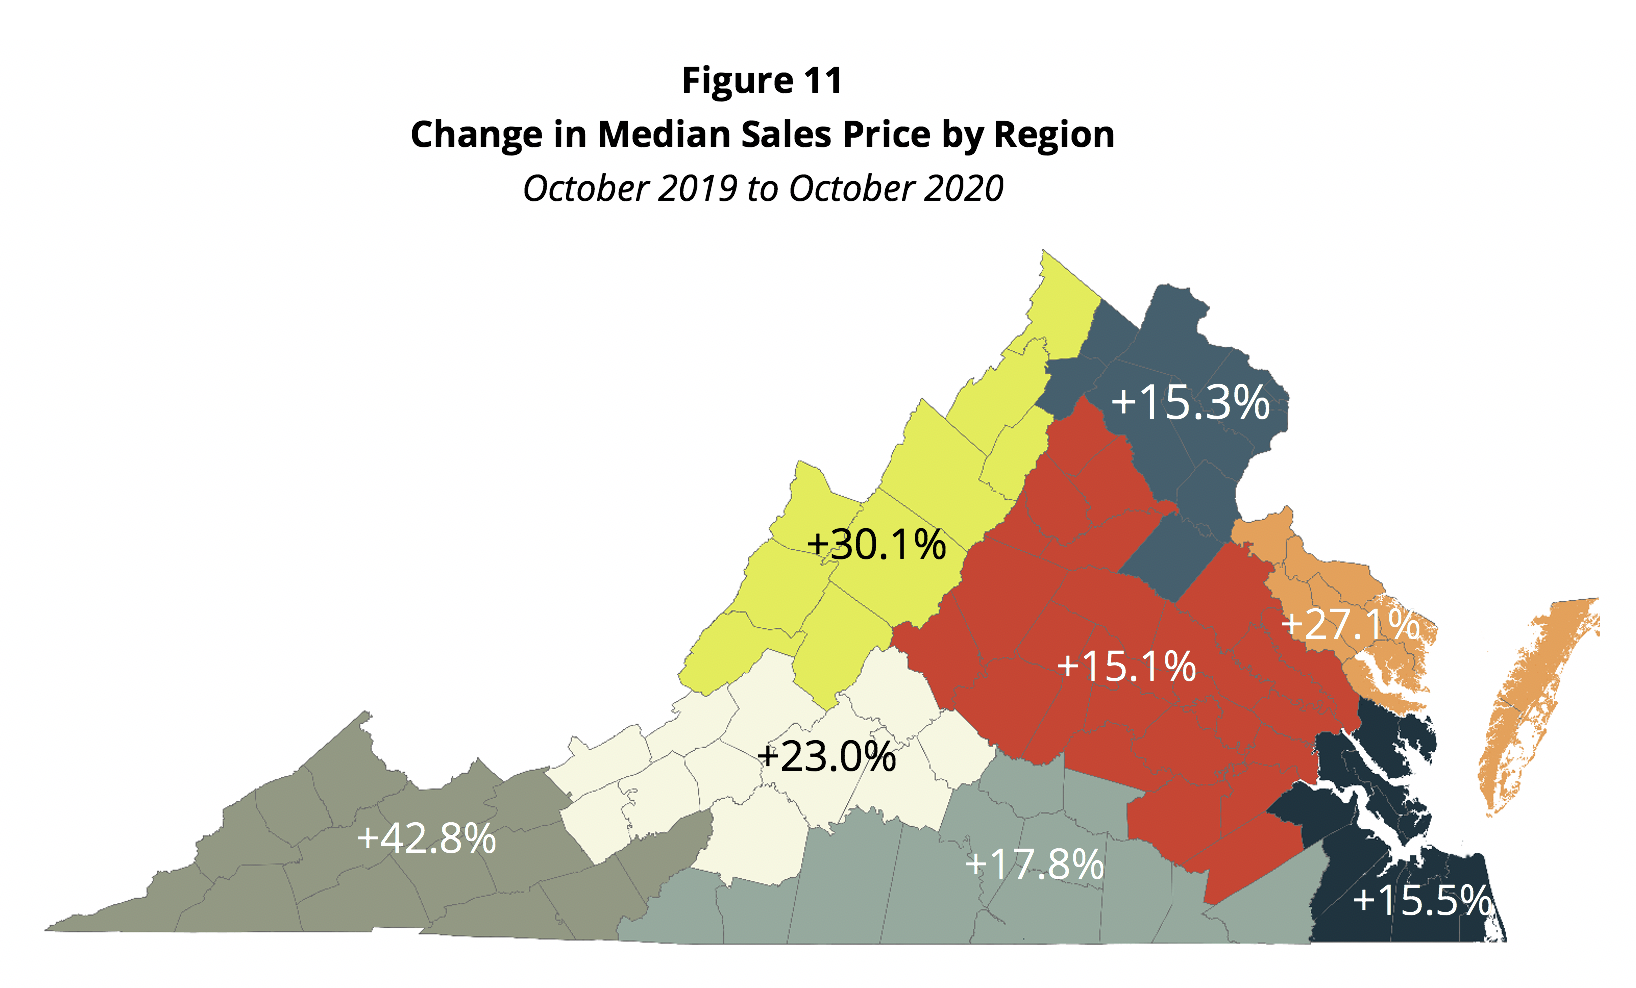 change in median sales price by region